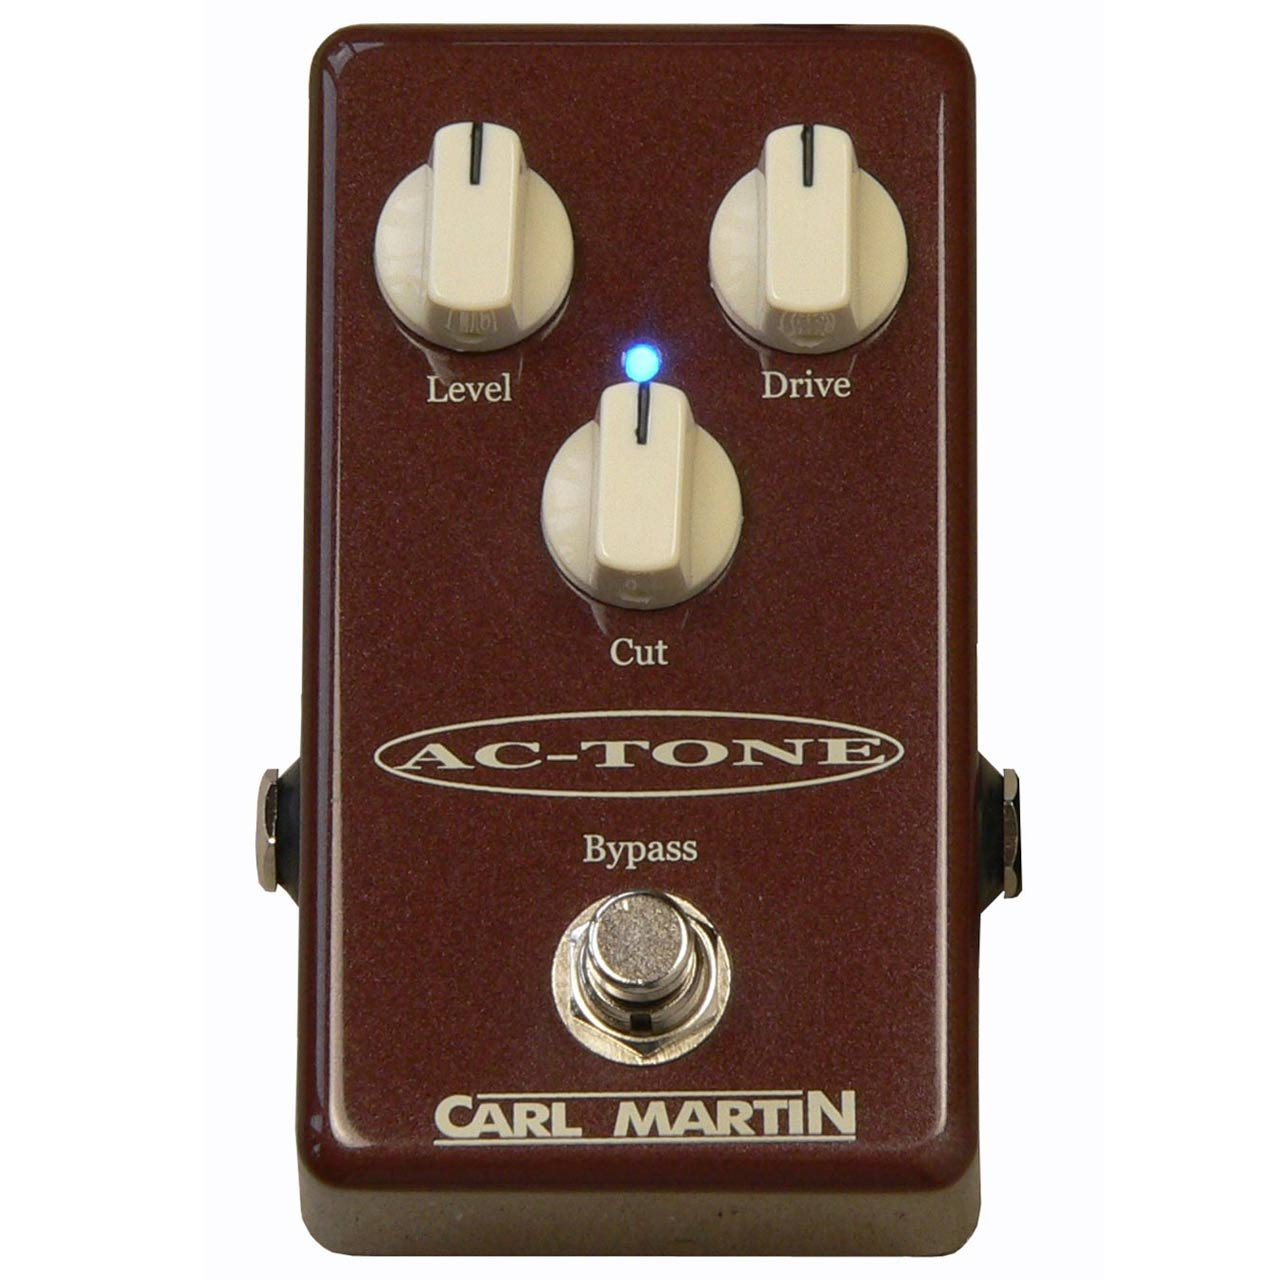 Carl Martin AC-Tone Single Channel Tone Guitar Pedal